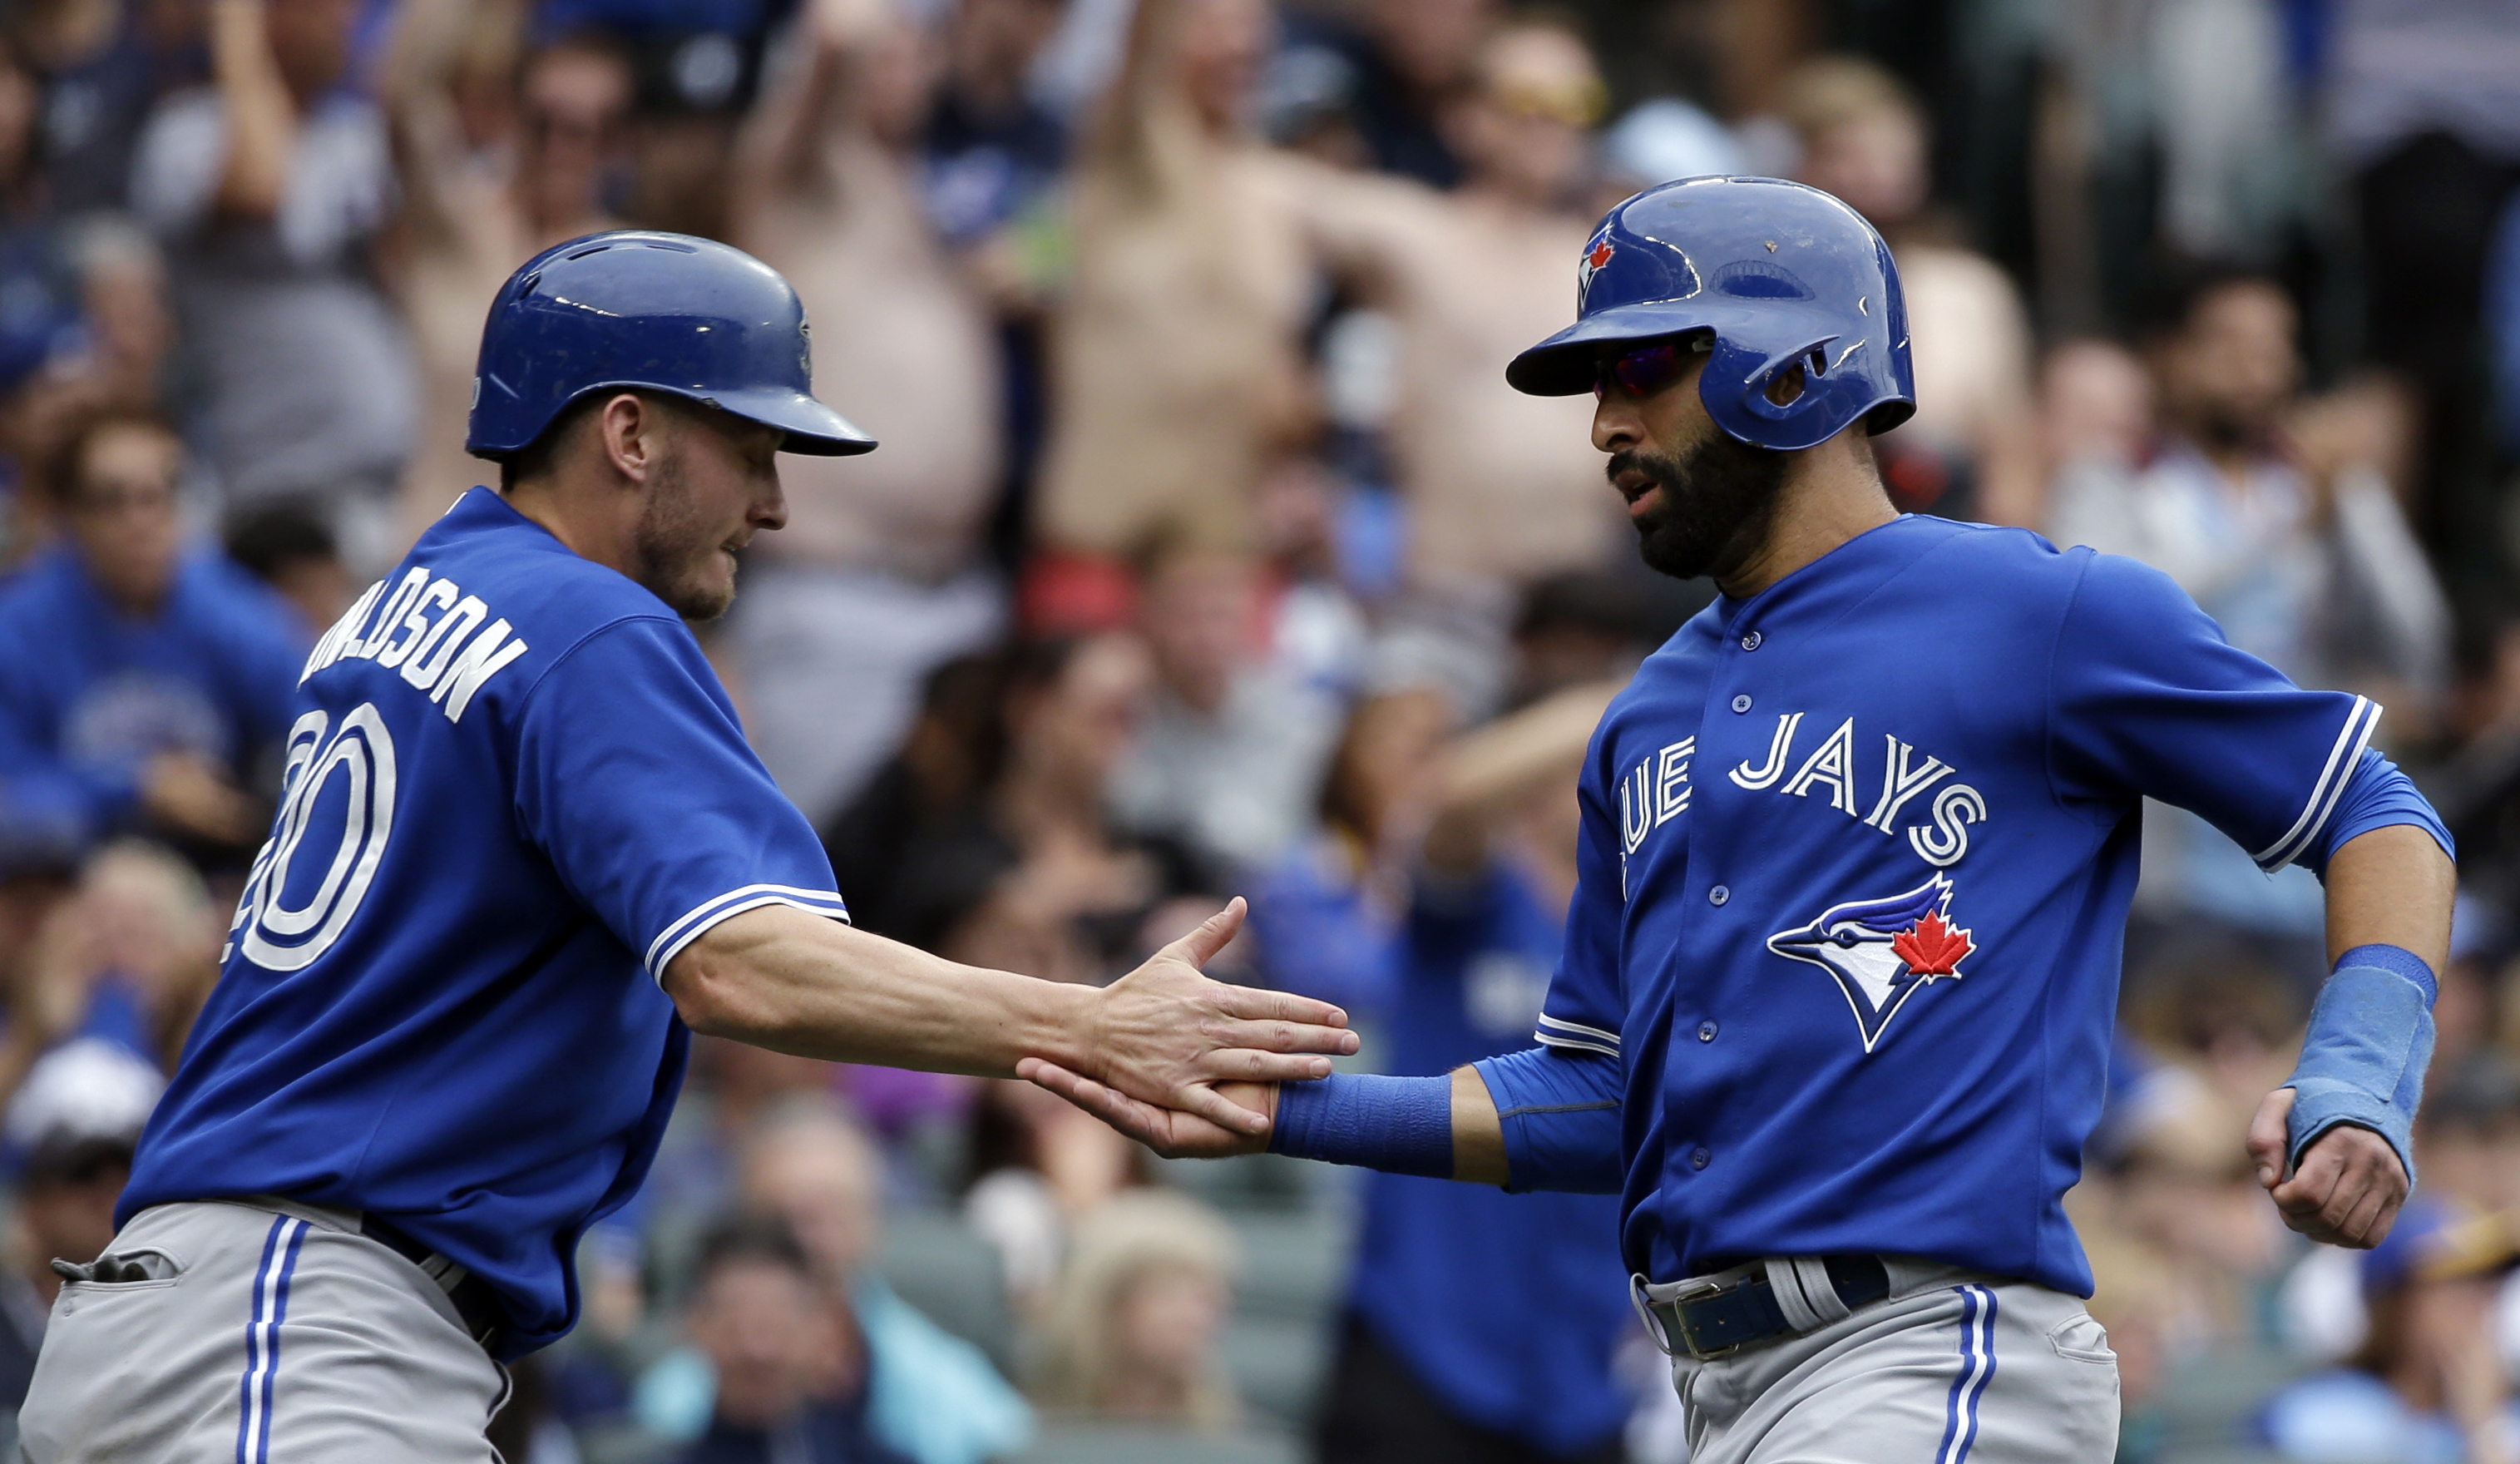 Toronto Blue Jays' Josh Donaldson, left, and Jose Bautista celebrate after they scored on a single by Chris Colabello against the Seattle Mariners in the ninth inning of a baseball game Saturday, July 25, 2015, in Seattle. (AP Photo/Elaine Thompson)